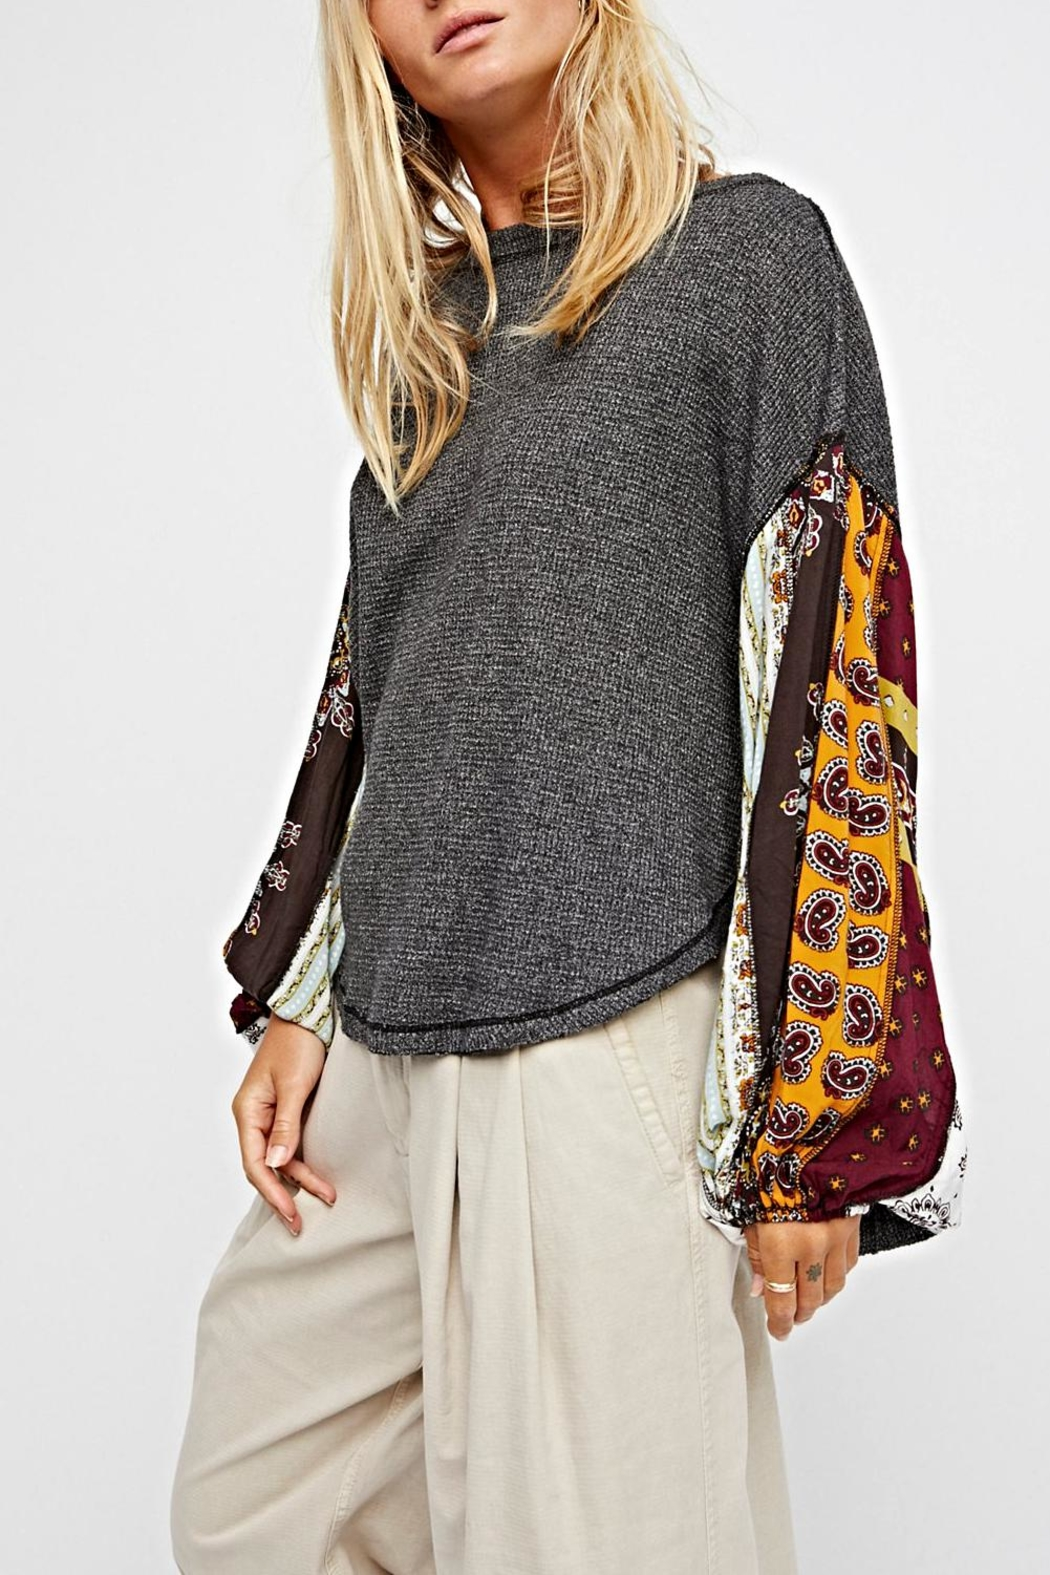 Free People Oversized Thermal Top - Main Image